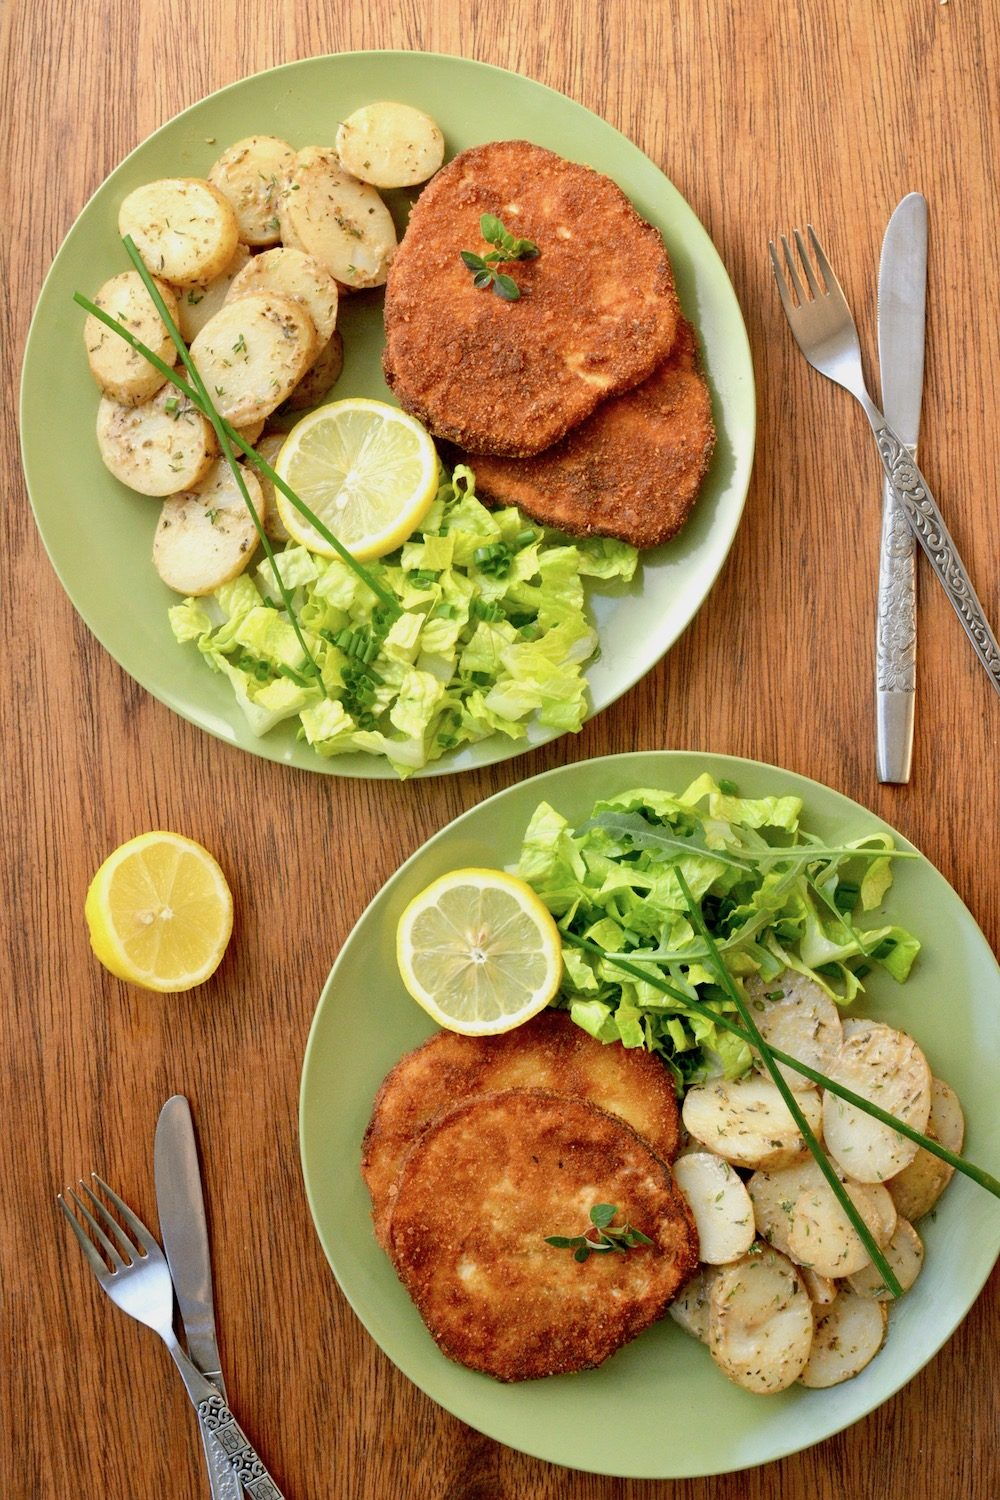 Two plates with salad and golden brown schnitzel ready to eat.